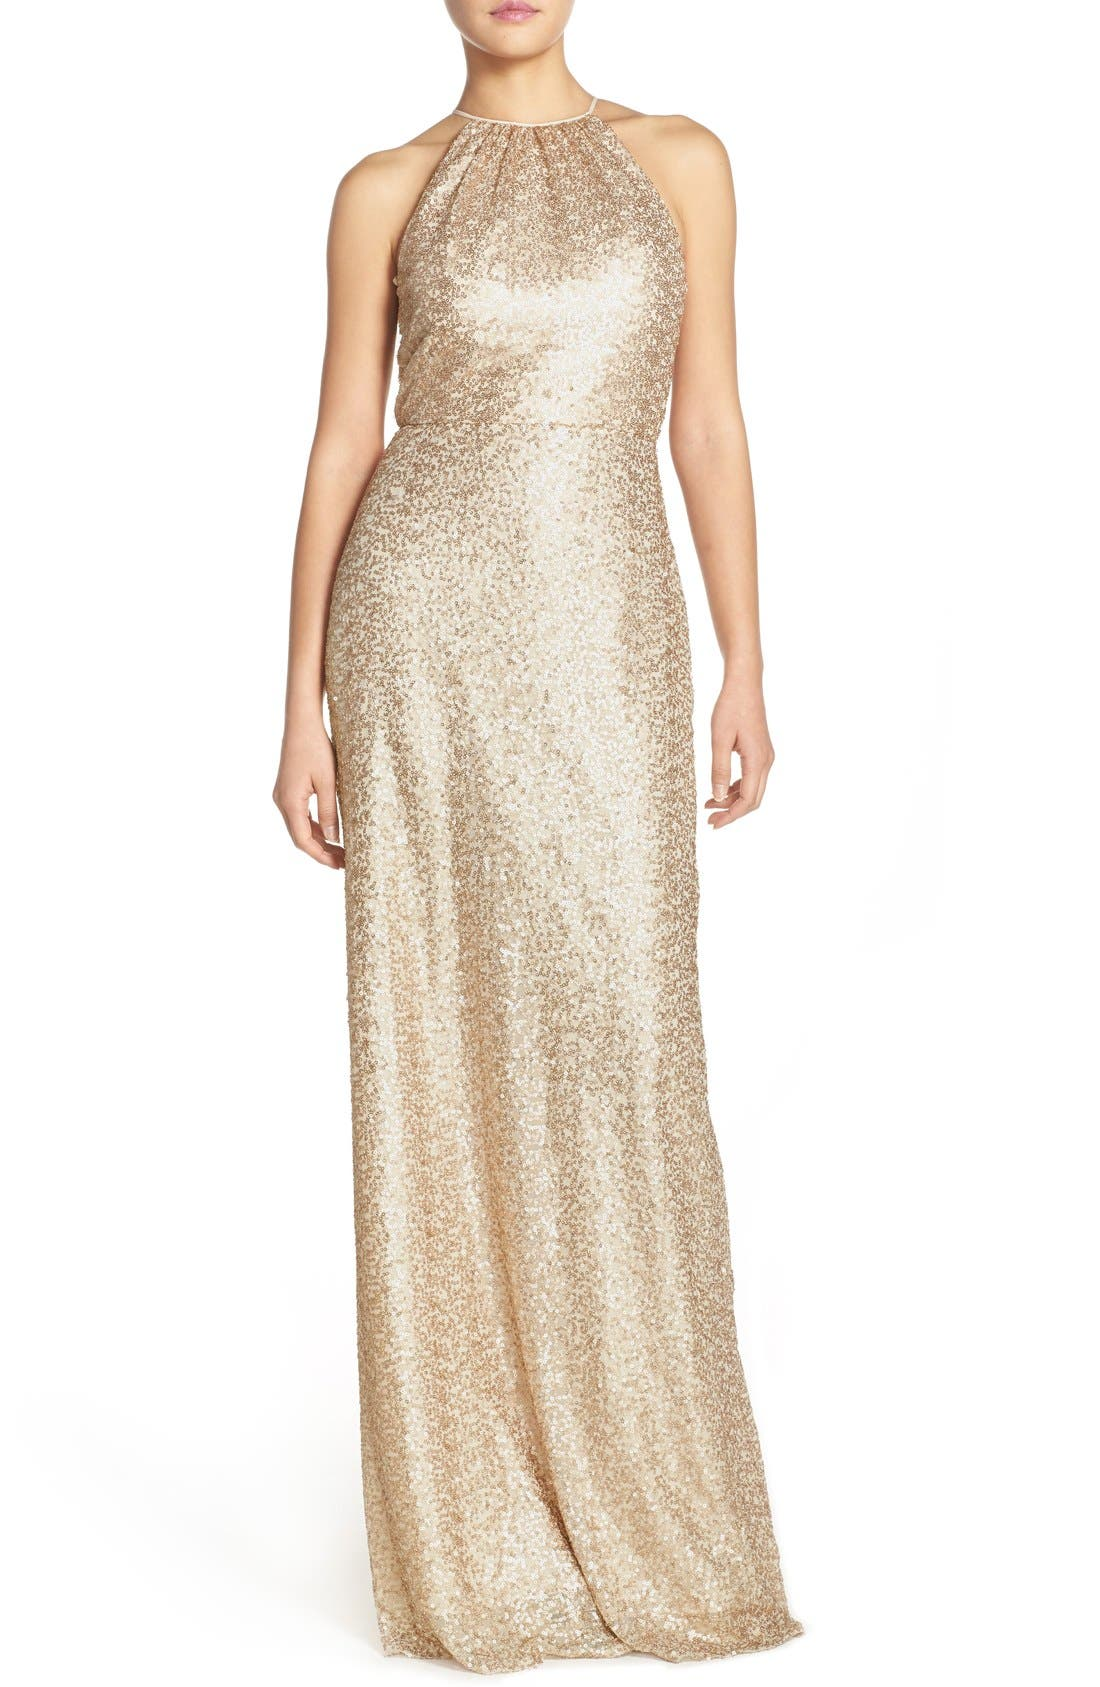 Amsale 'Chandler' Sequin Tulle Halter Style Gown